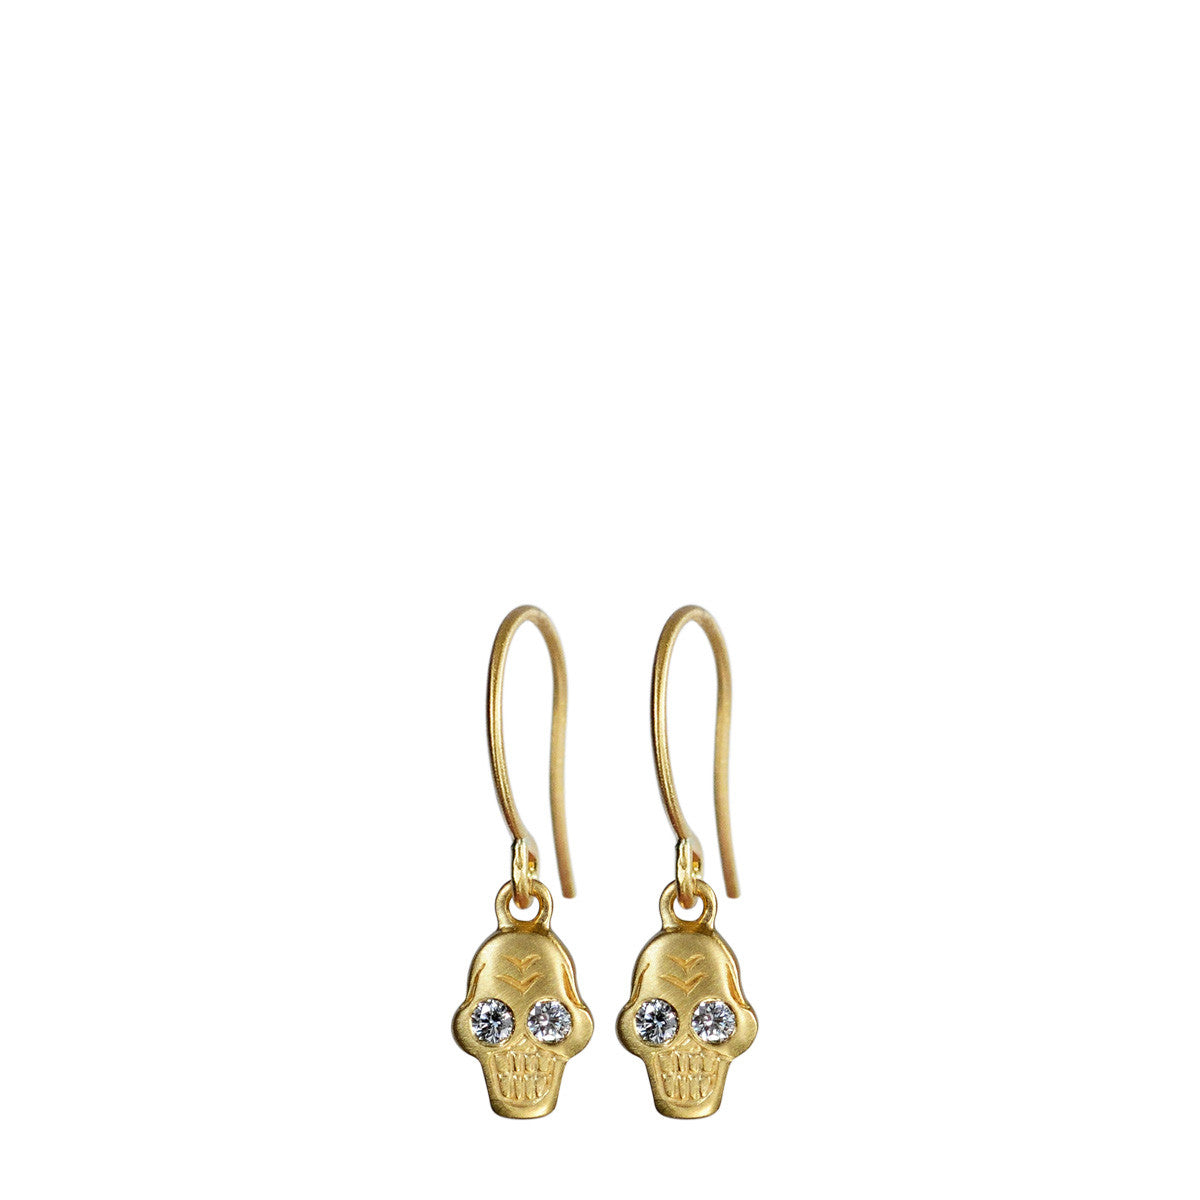 18K Gold Tiny Skull Earrings with Diamonds